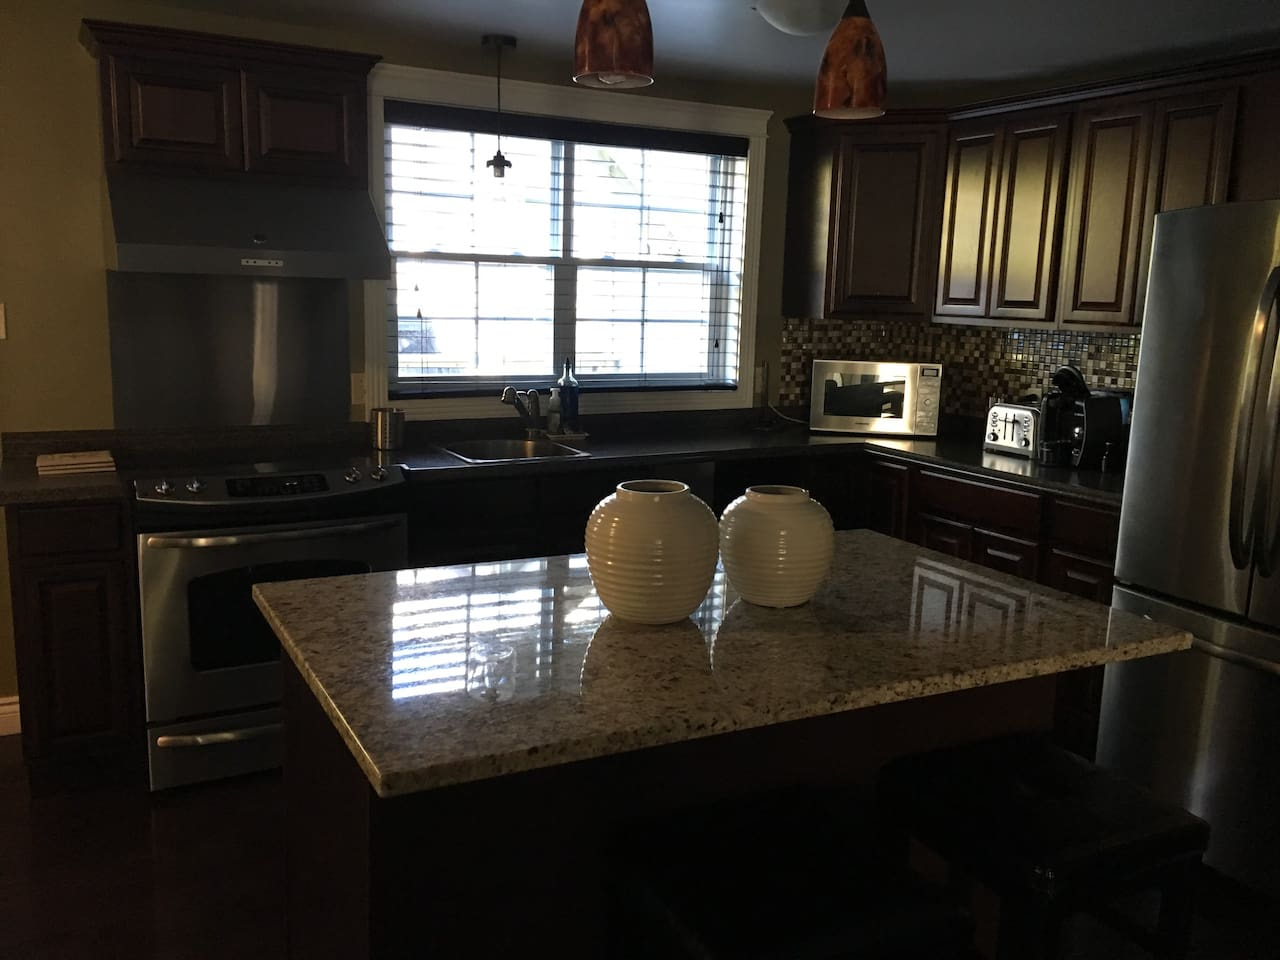 Bright sunny kitchen stainless appliances and granite island with two stools for seating.